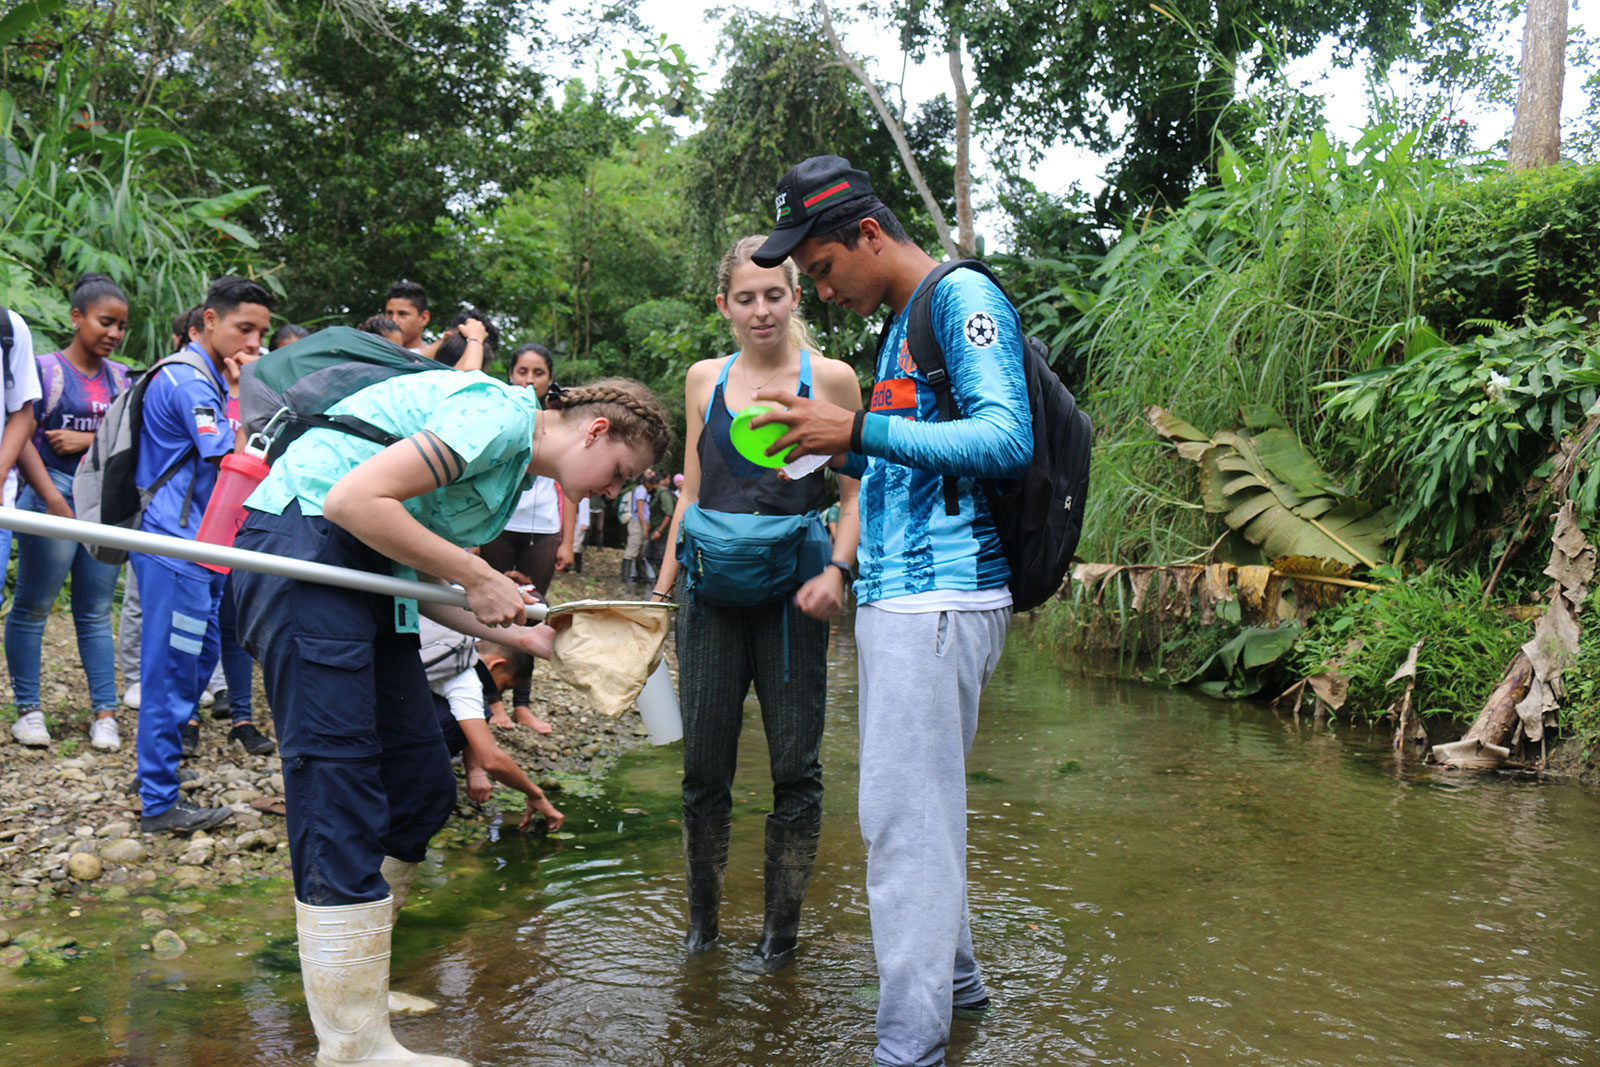 Teenagers examine the contents of a stream